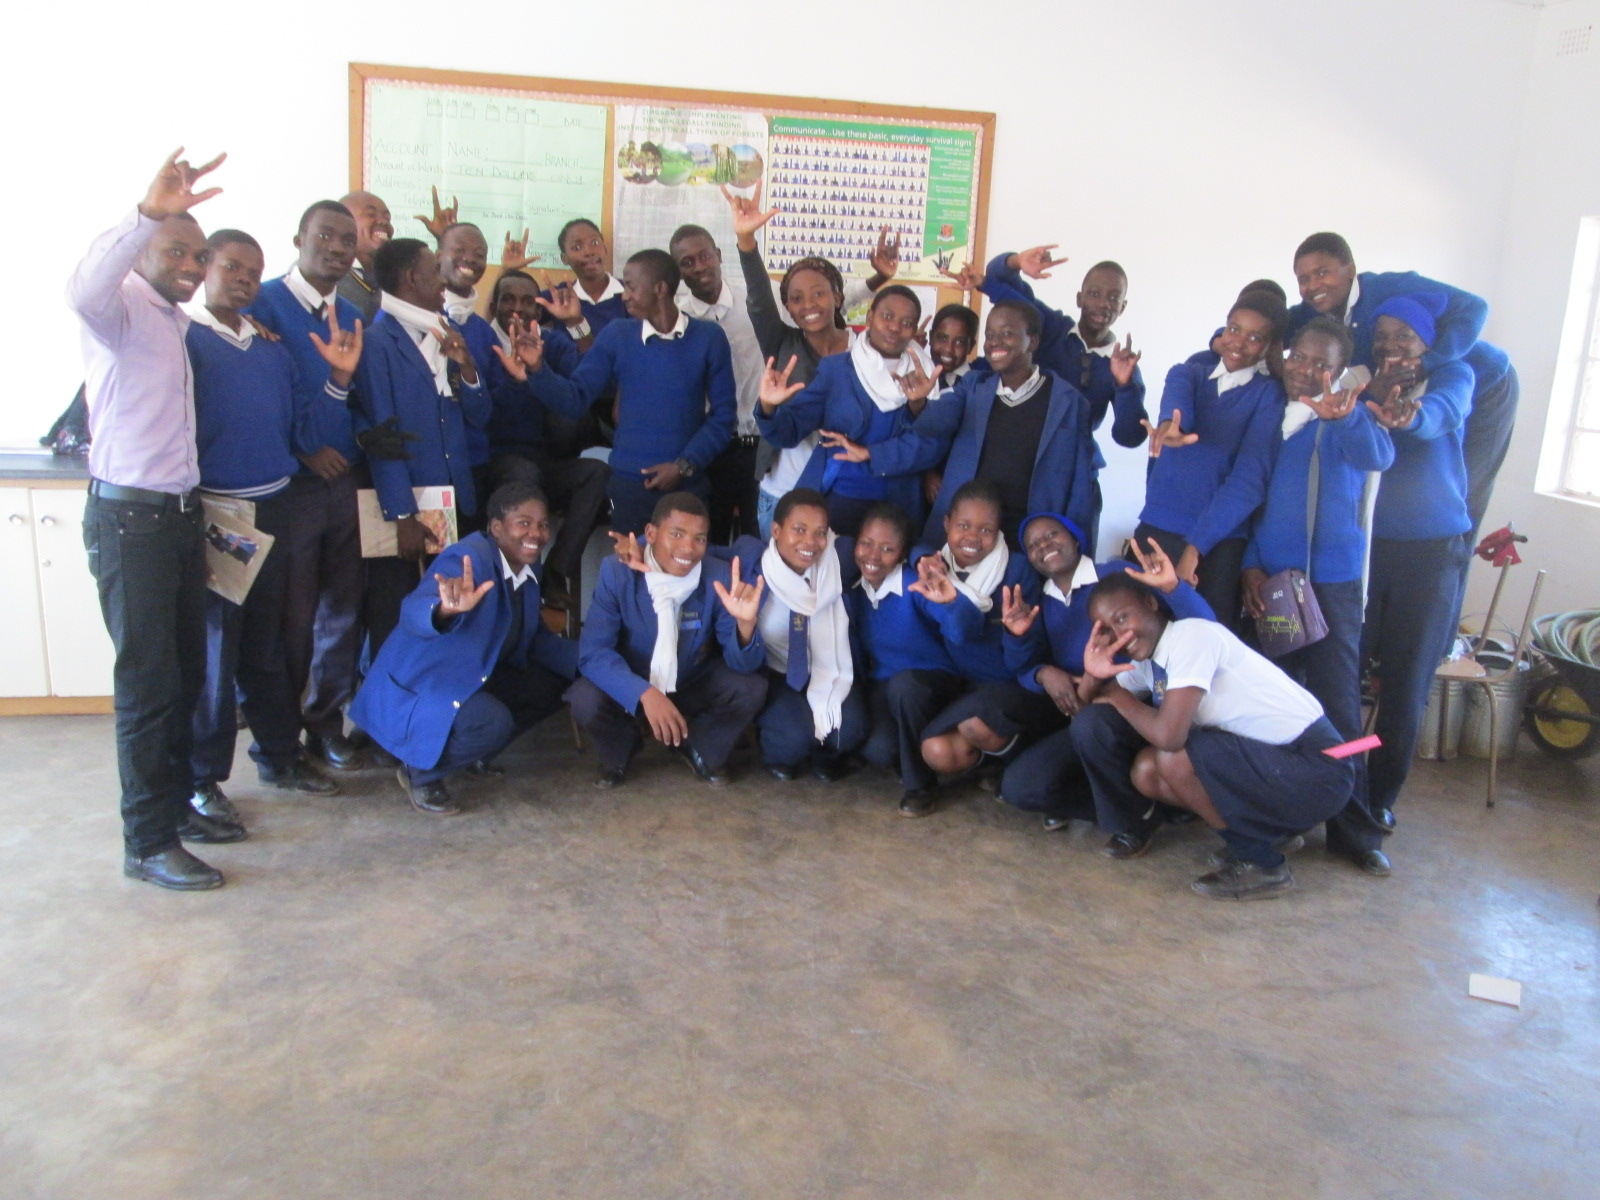 Thabiso with some of the blind children